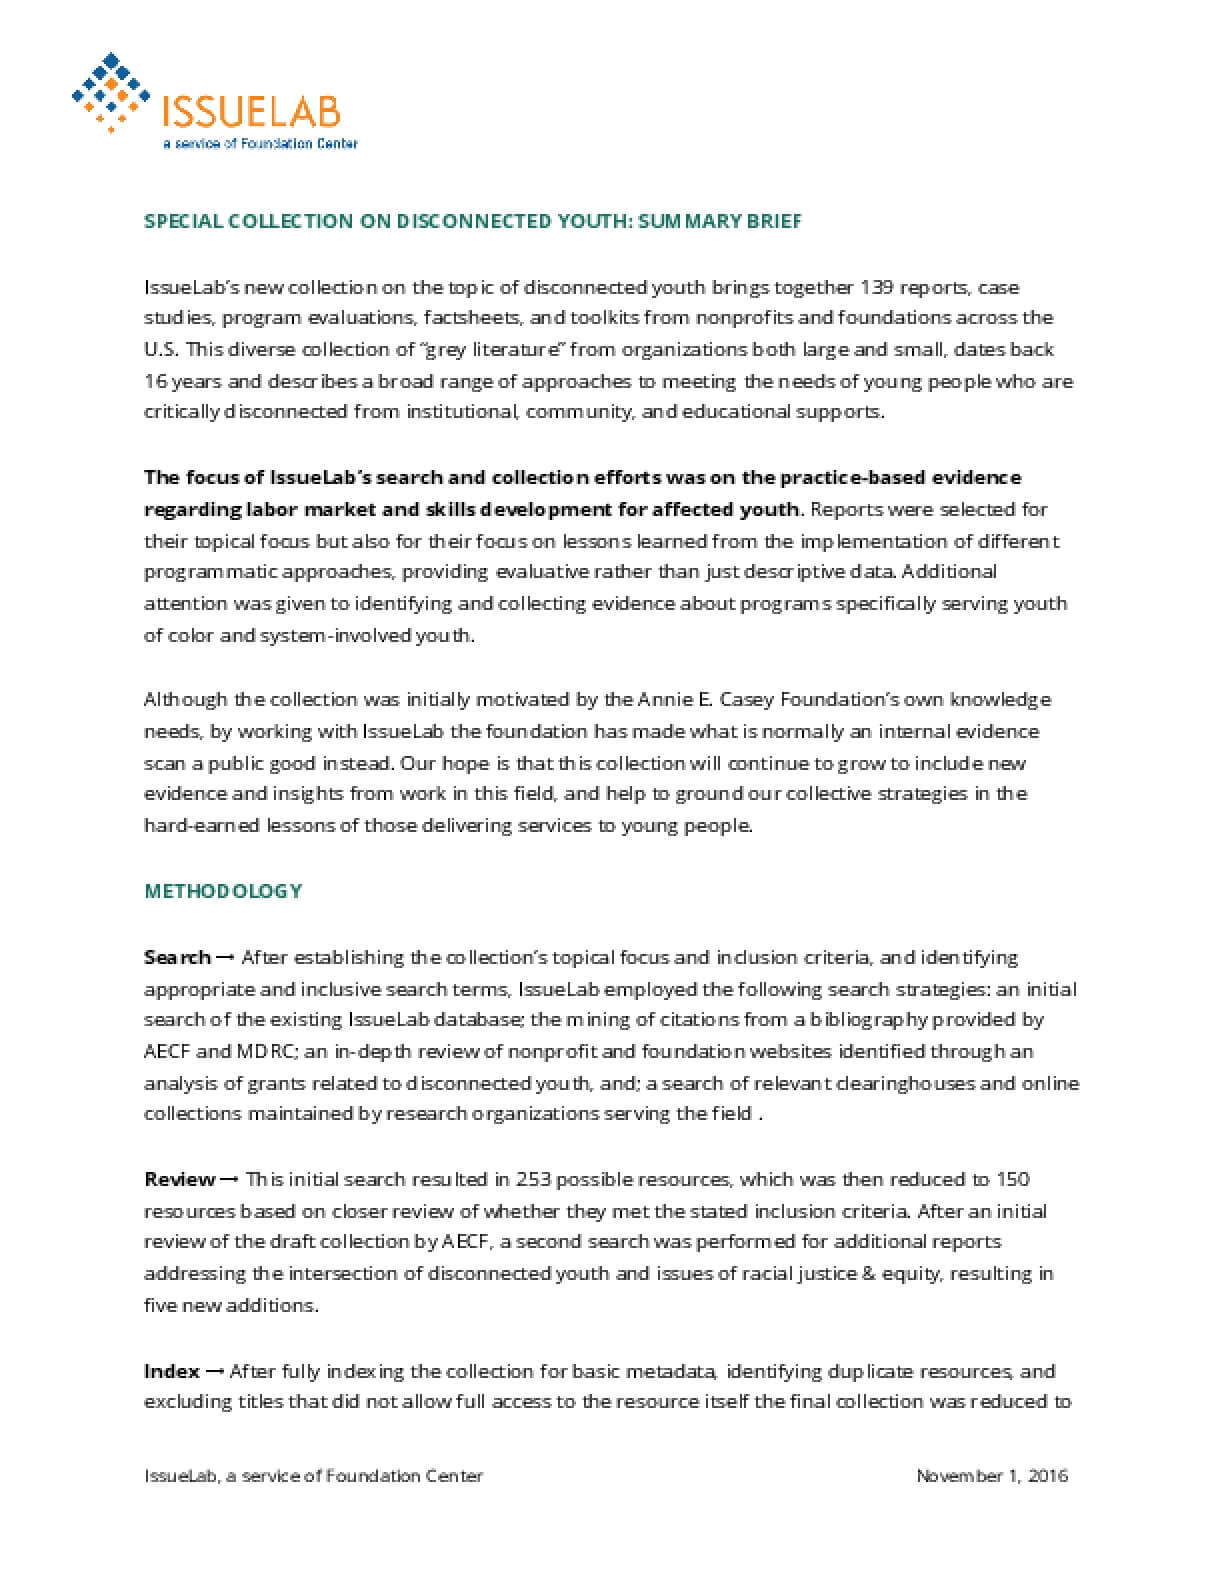 Special Collection on Disconnected Youth: Summary Brief